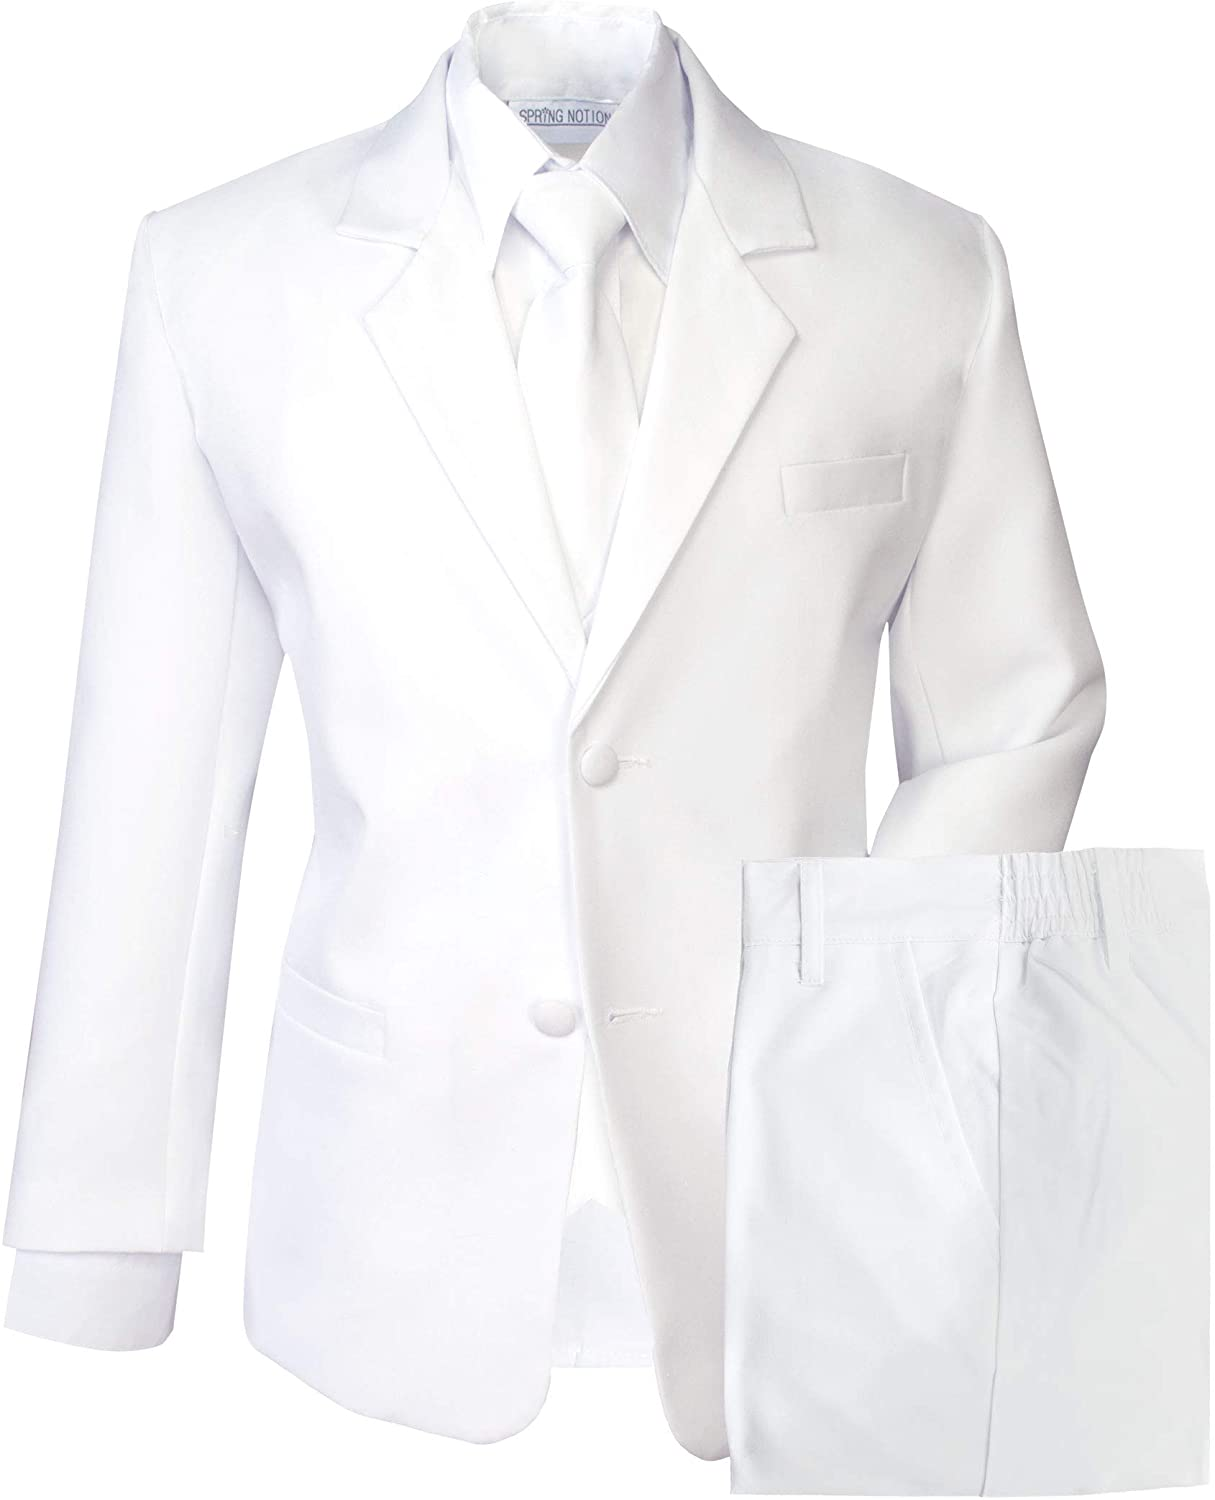 Spring Notion trend rank Boys' Formal Dress White Set Max 47% OFF Suit